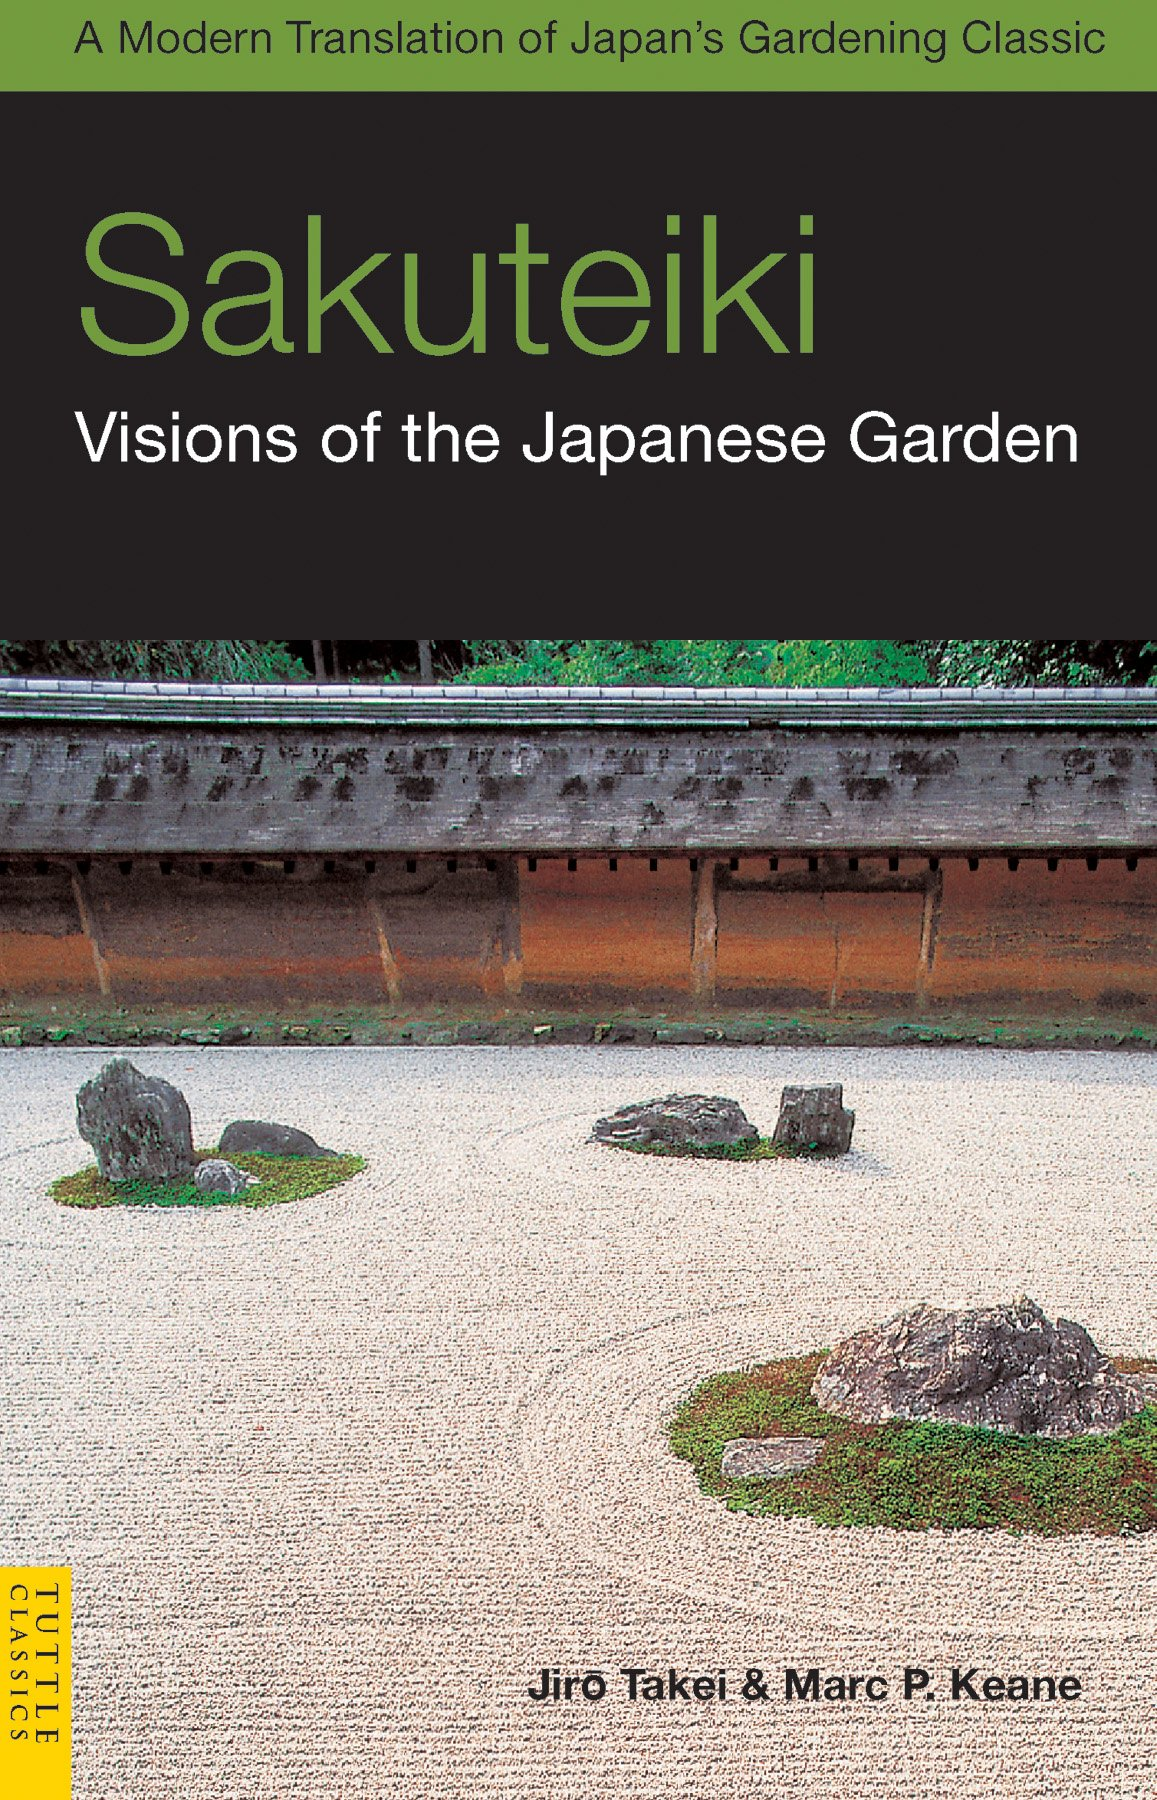 Sakuteiki: Visions of the Japanese Garden: A Modern Translation of Japan's Gardening Classic (Tuttle Classics) ebook